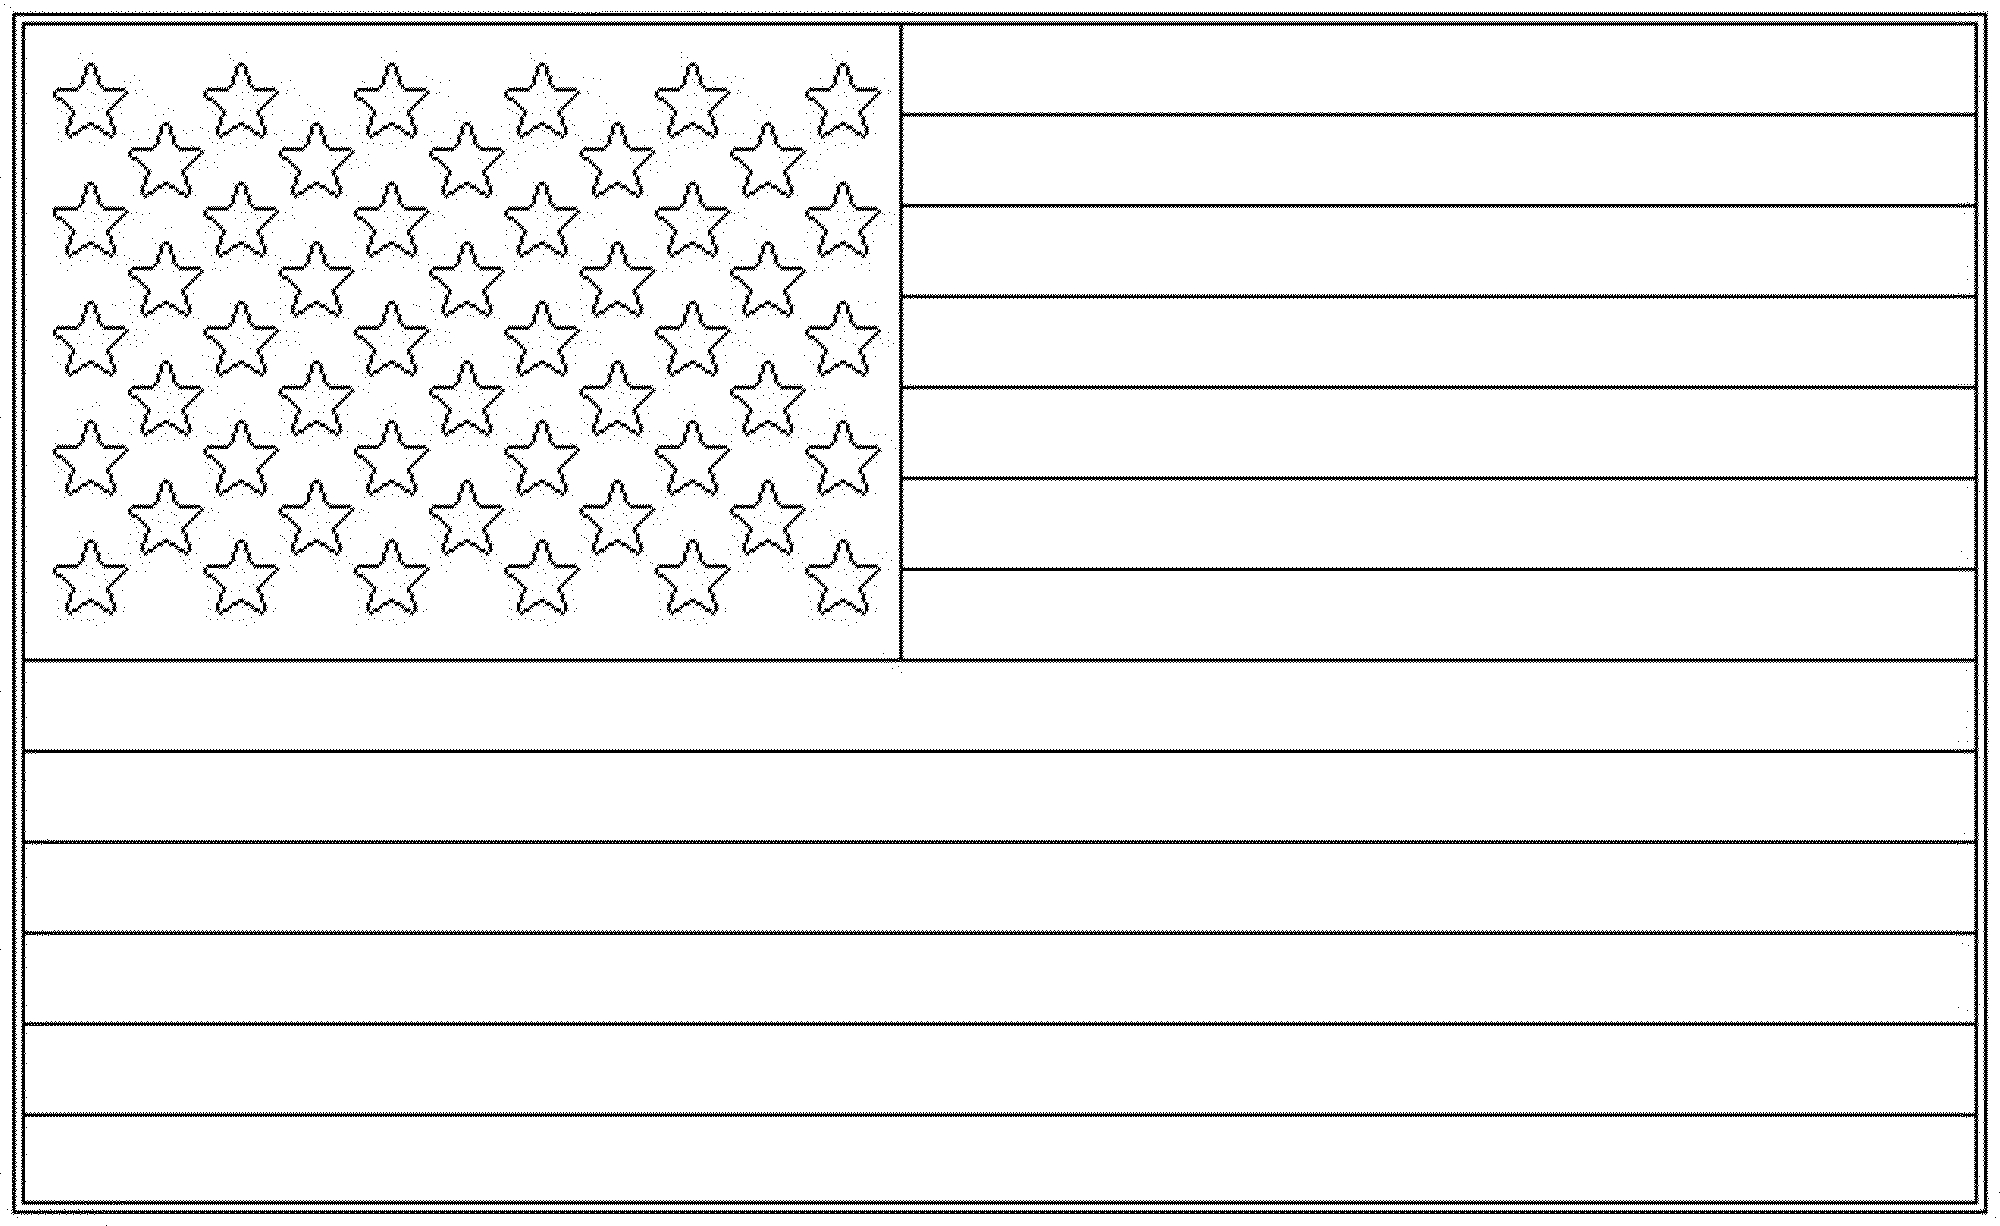 The American Flag Coloring Page American Flag Coloring Page For The Love Of The Country Best Apps